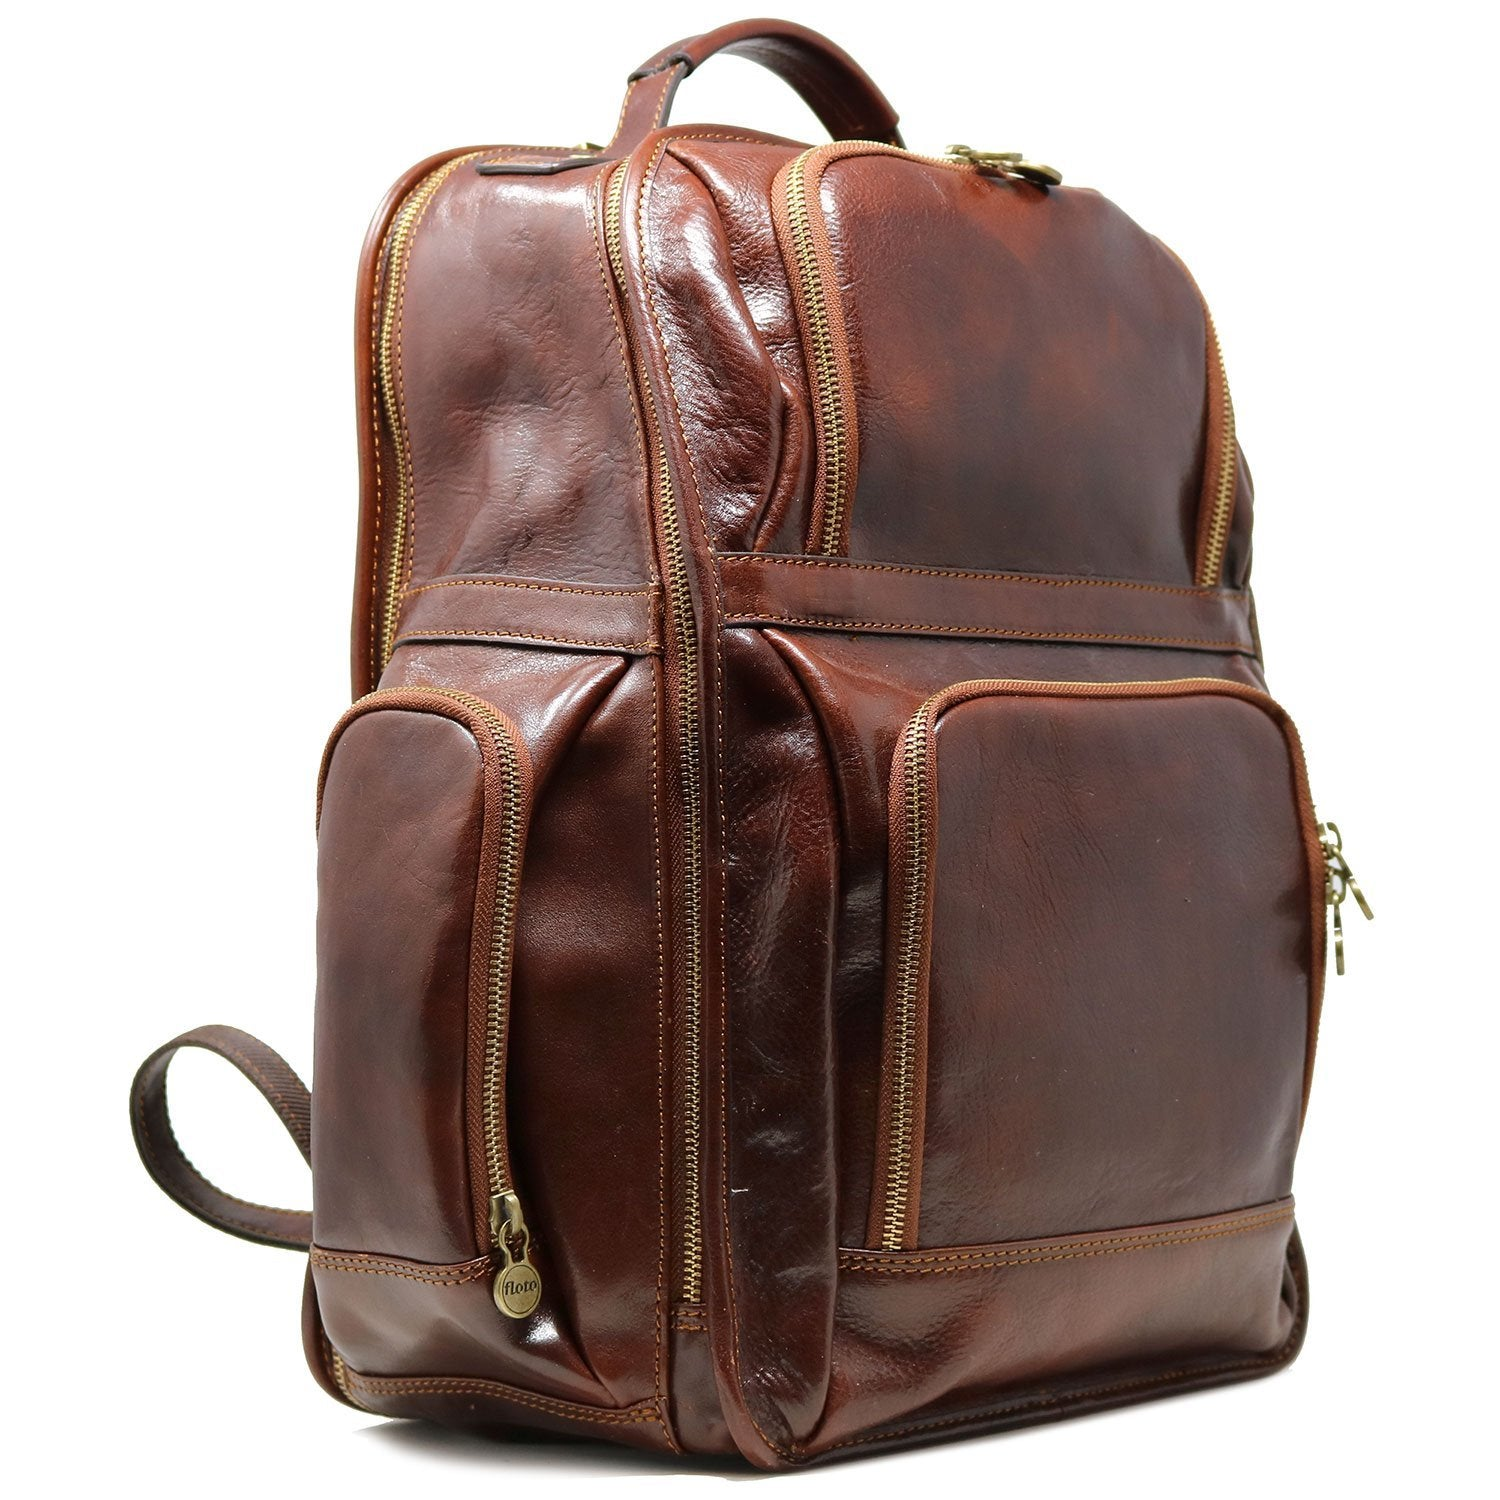 Leather Backpack Floto Italian Cargo Pocket Knapsack Military Pack Vecchio Brown - Side View